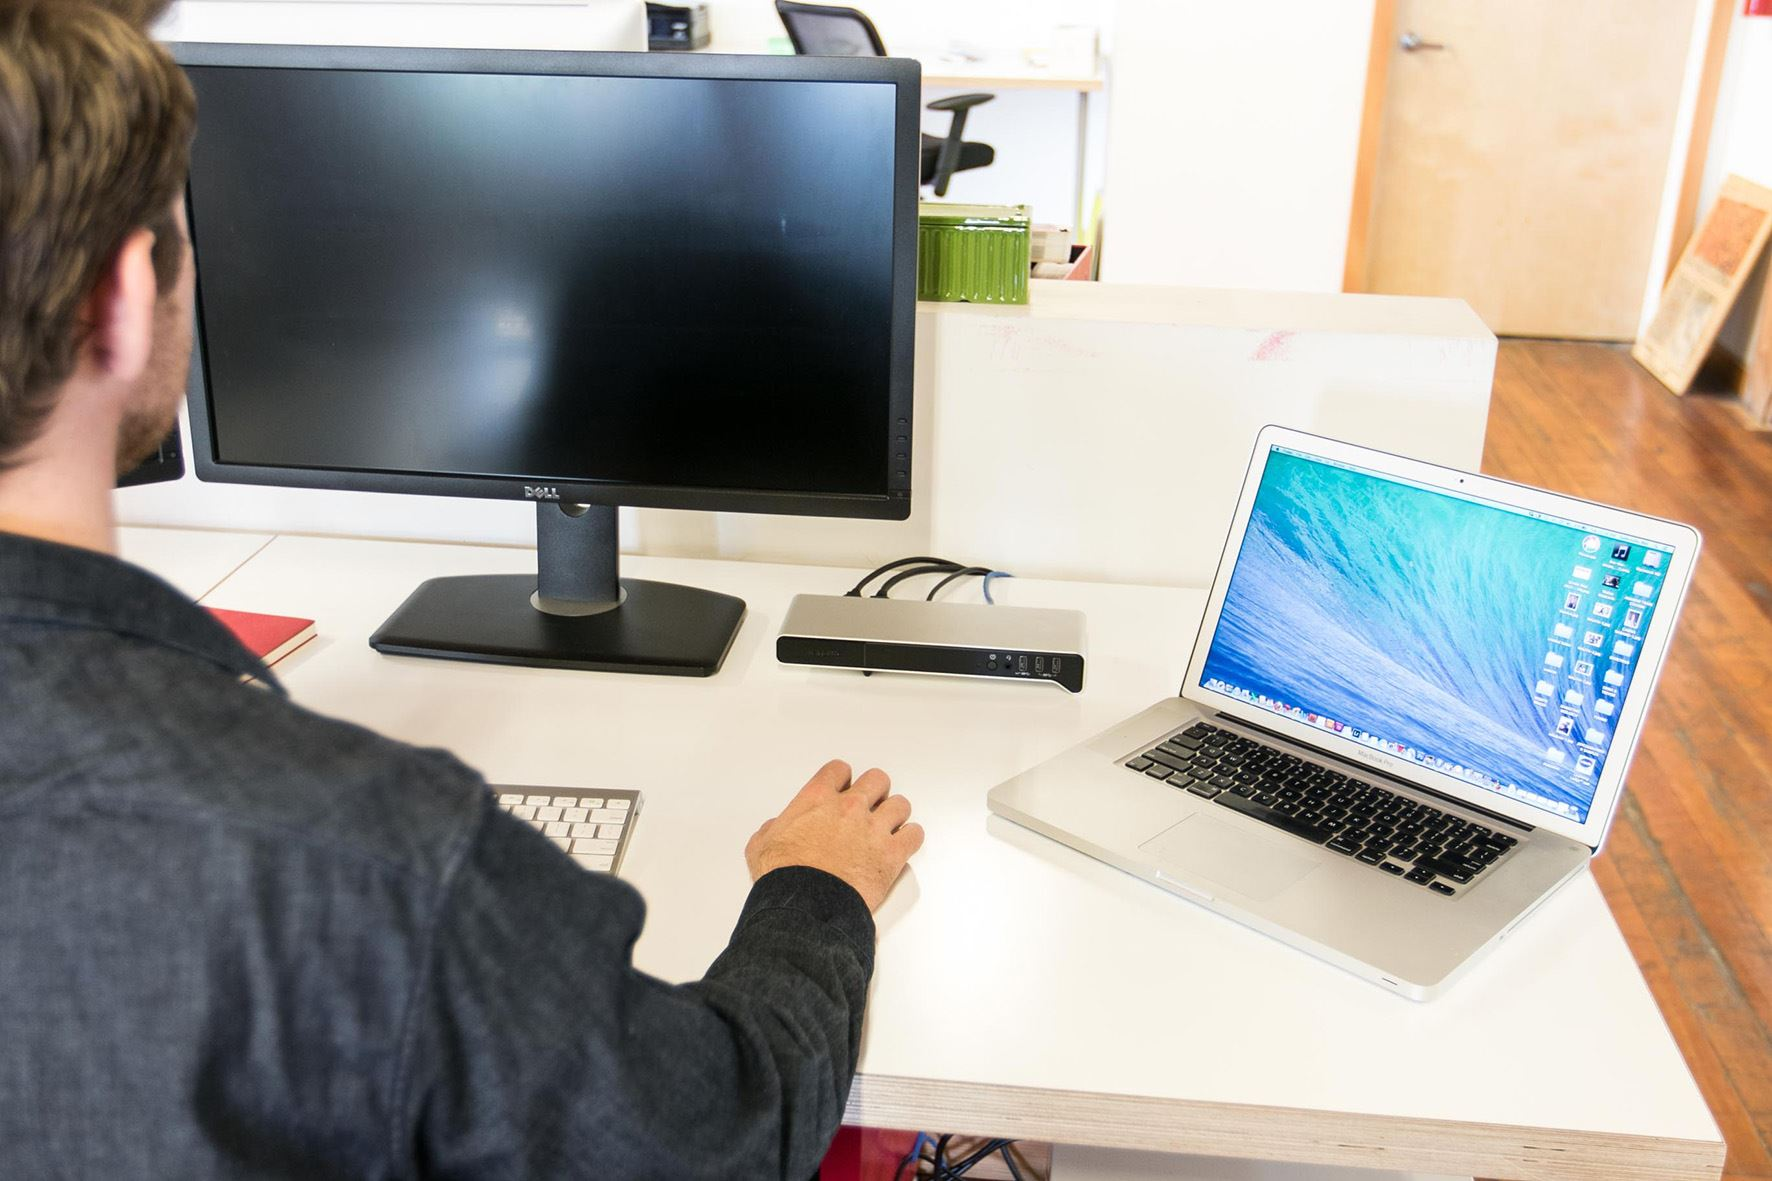 how to set up docking station with two monitors